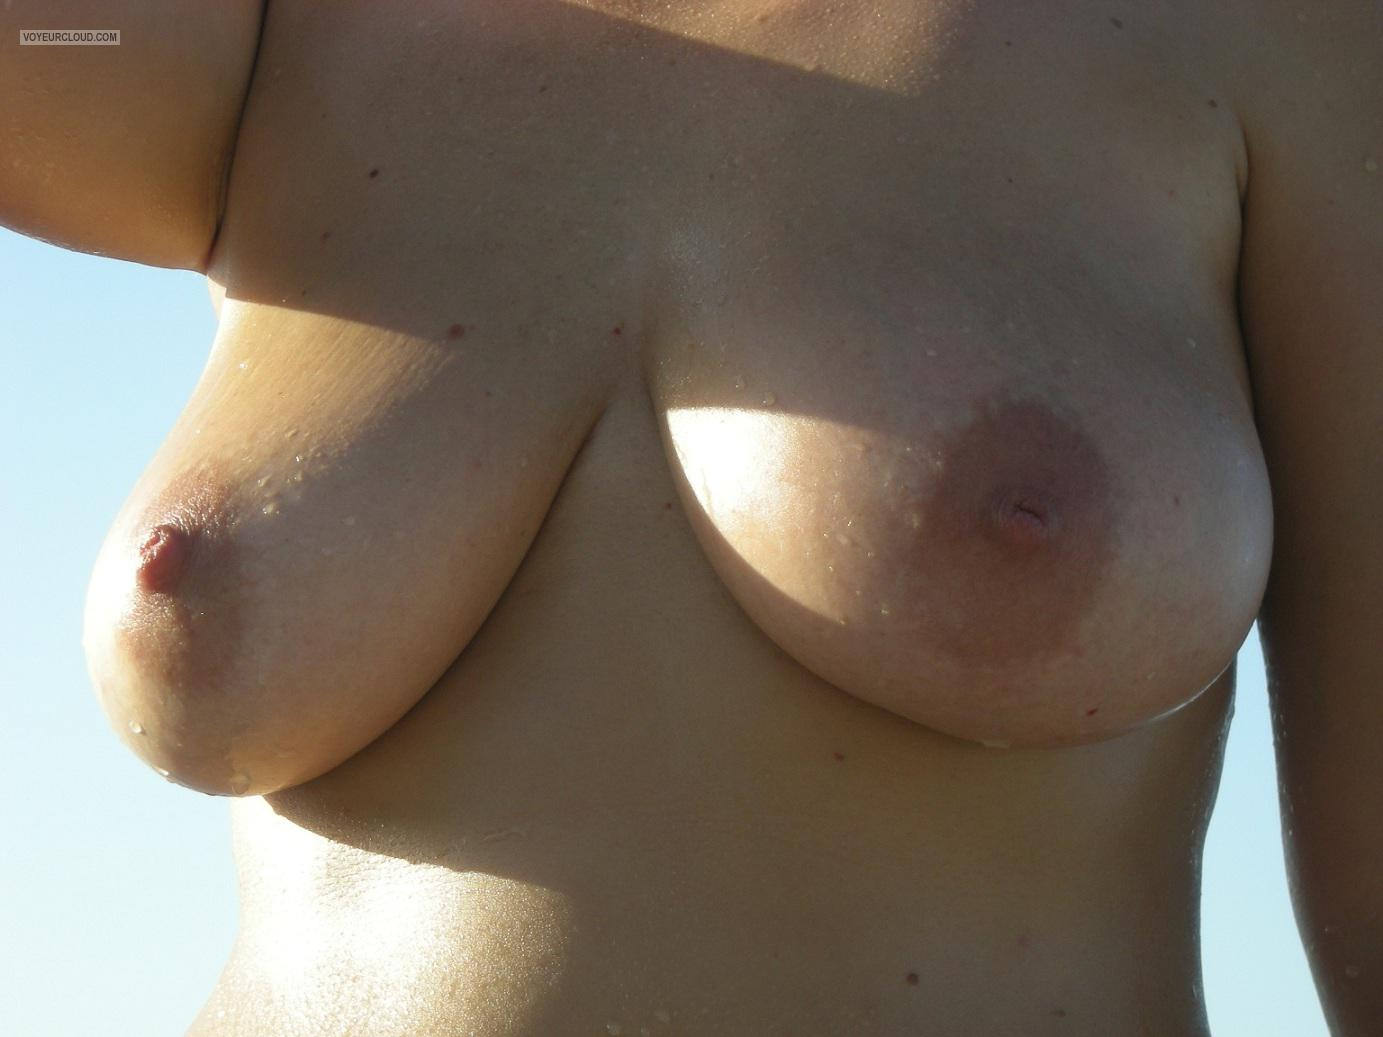 Tit Flash: Girlfriend's Big Tits - M from Greece